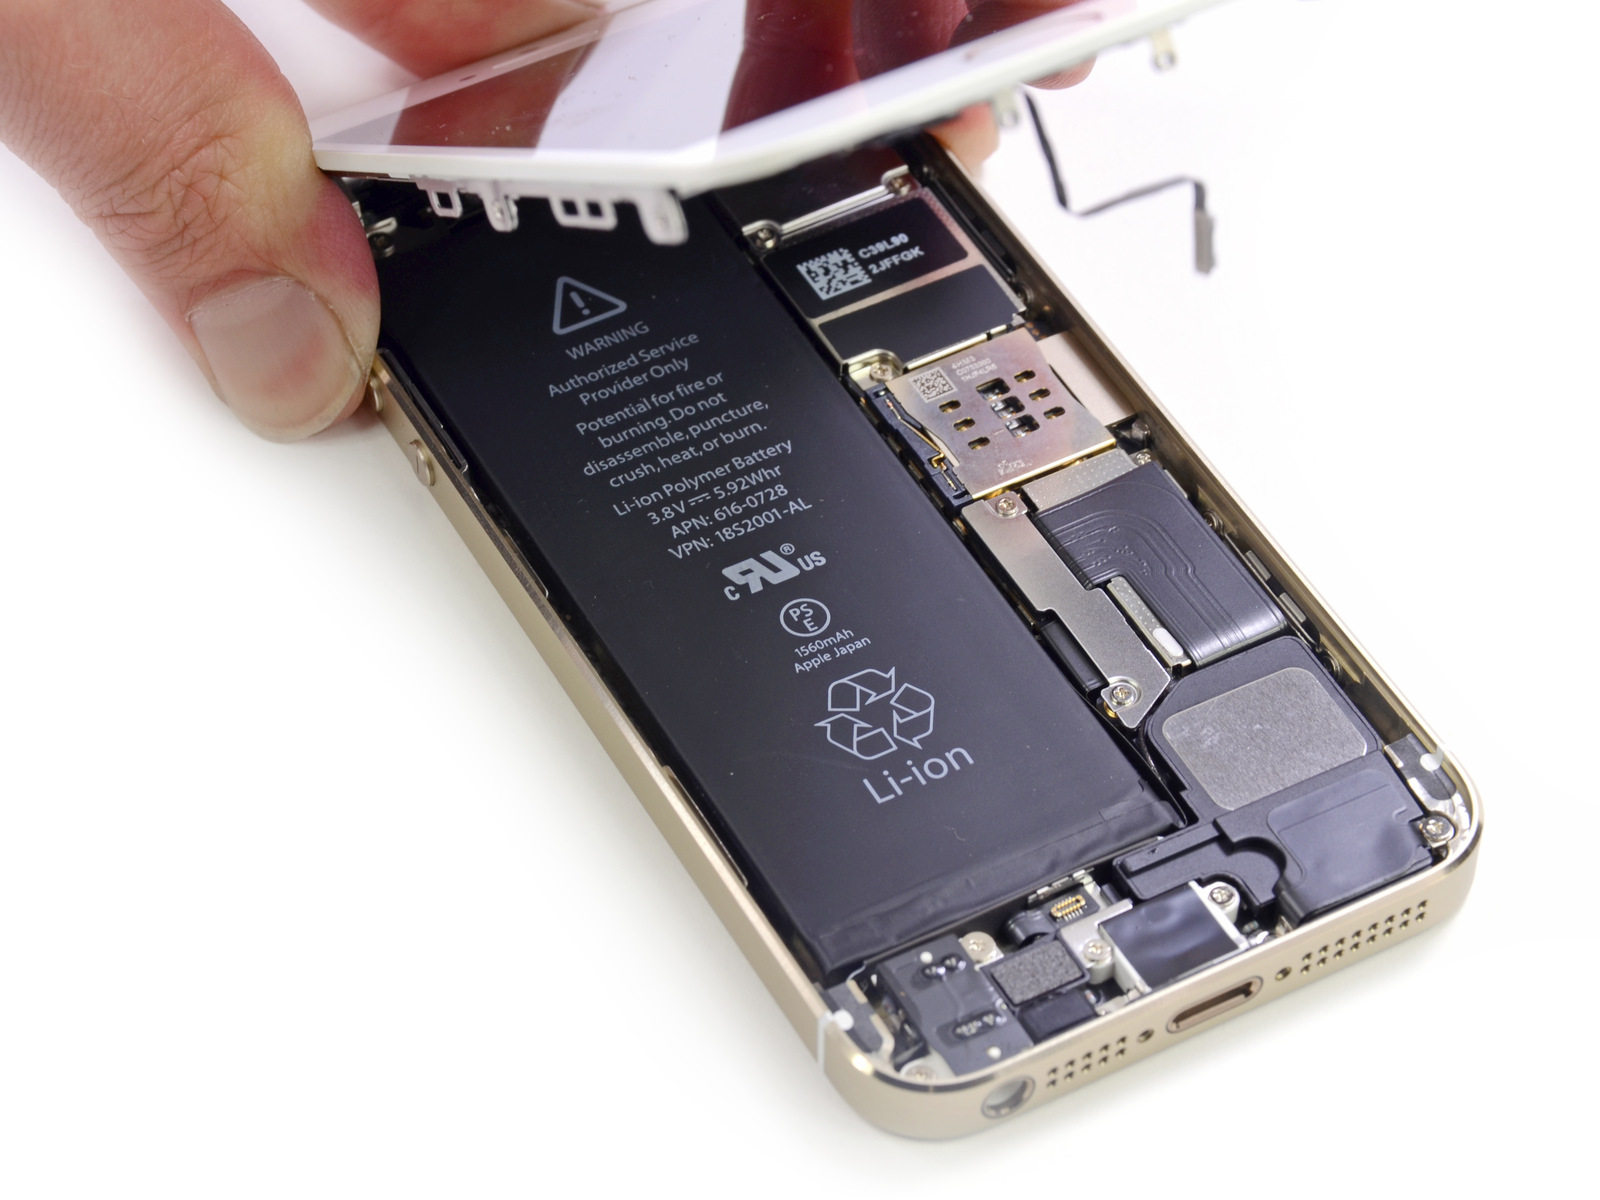 Desmontagem do iPhone 5s dourado - iFixit